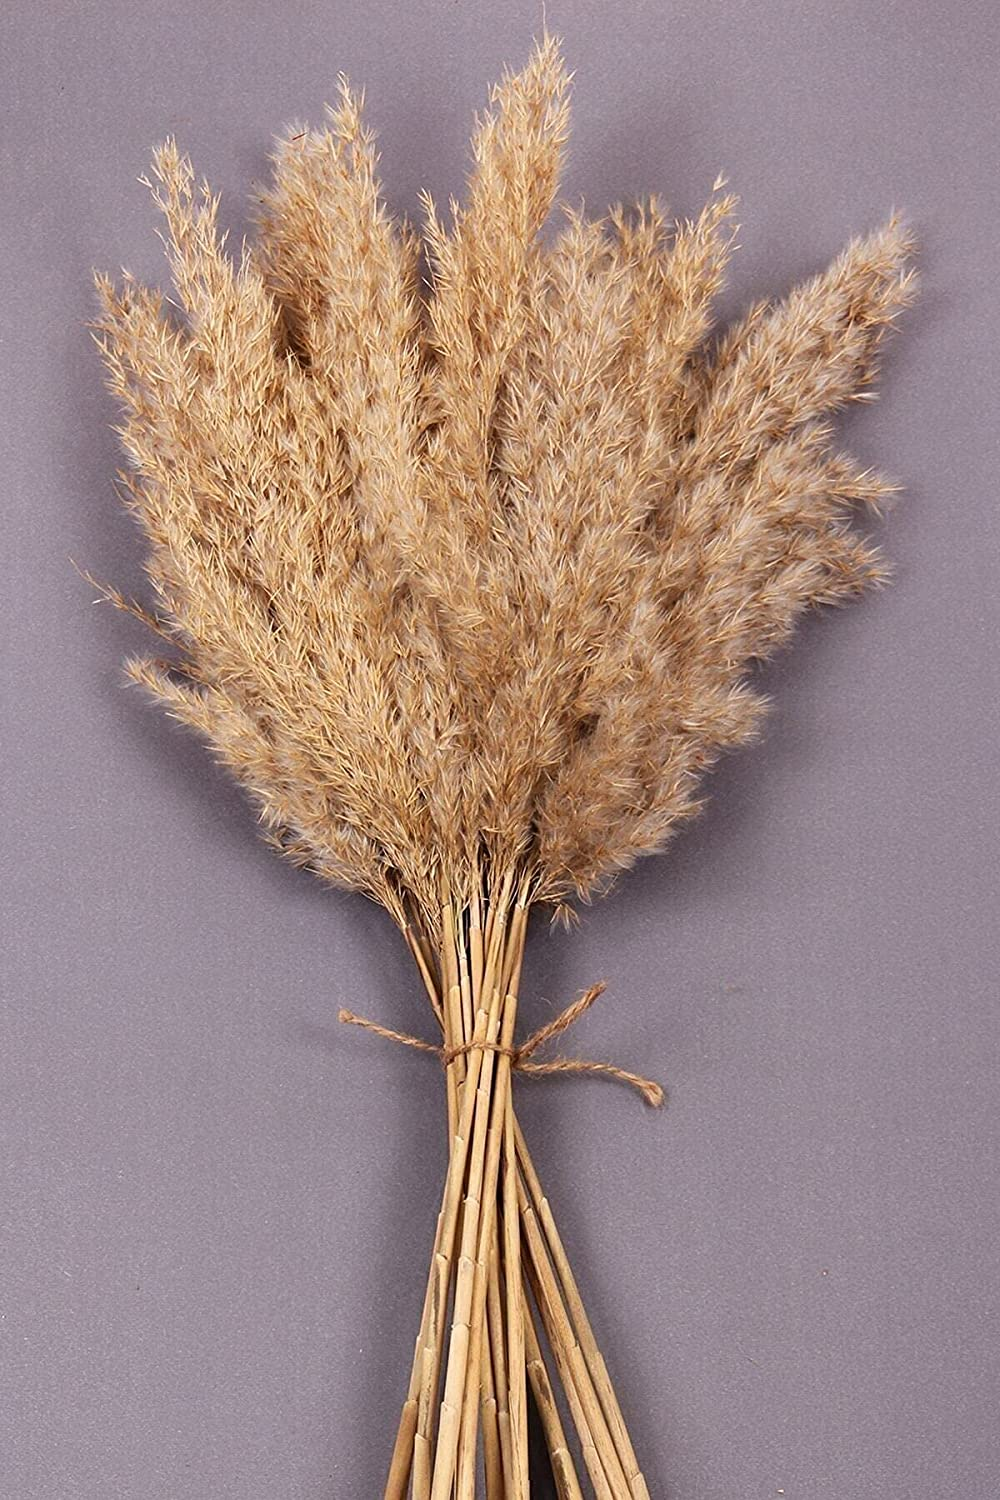 MAISONB 15pcs Dried Pampas Grass Decor Wedding Flower Bunch Natural Plants for Home Christmas Decorations Decoration Creation i. Style 6522